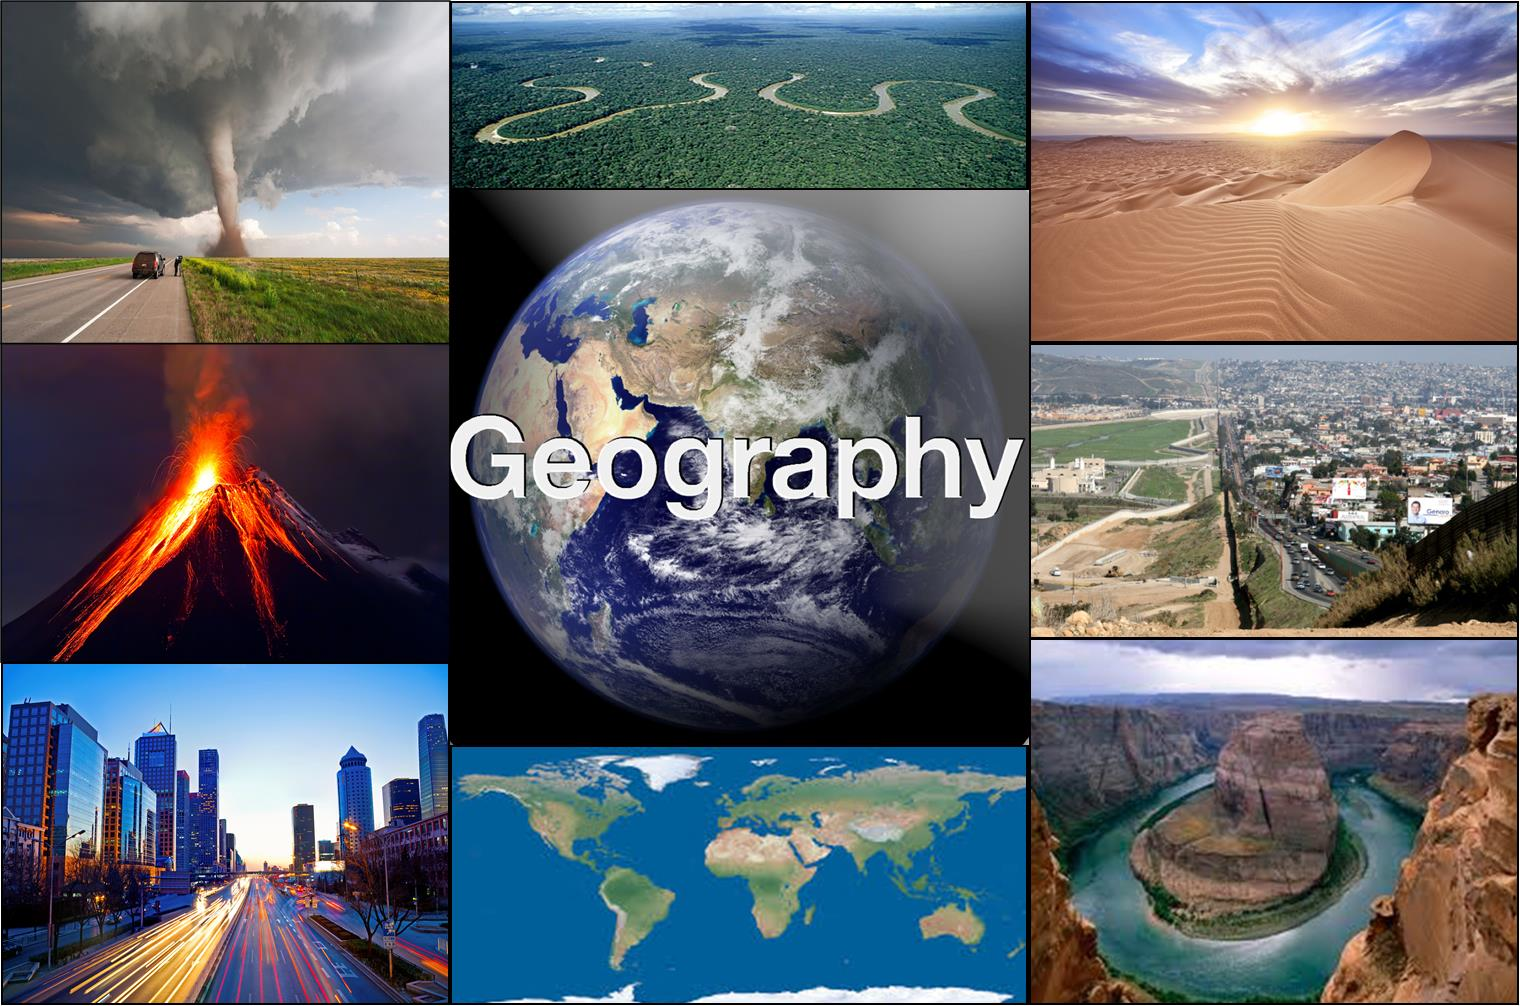 CCSE 4 Exam Geography Materials